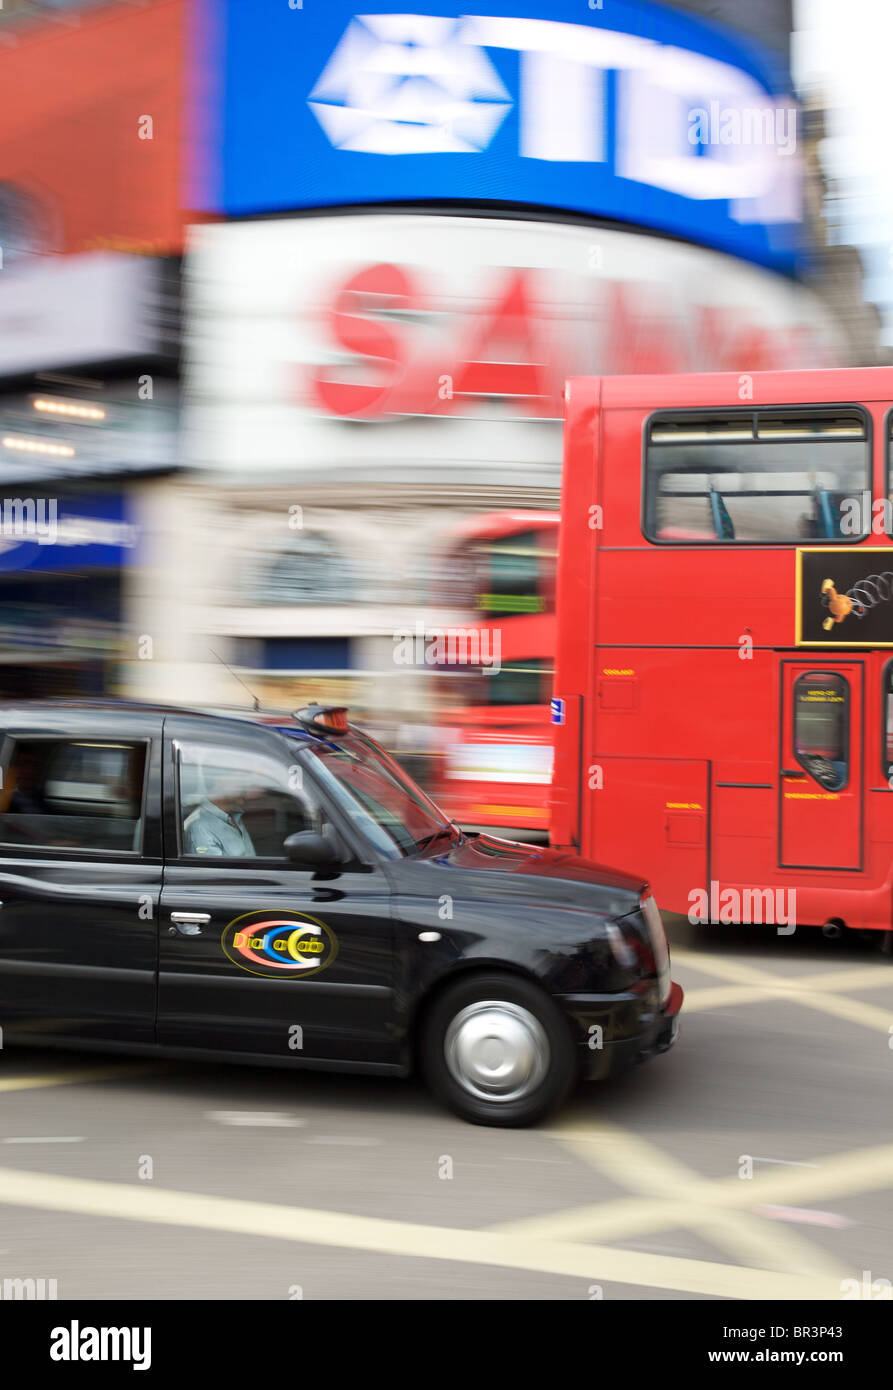 Bus and taxi at Piccadilly Circus, Londond - Stock Image